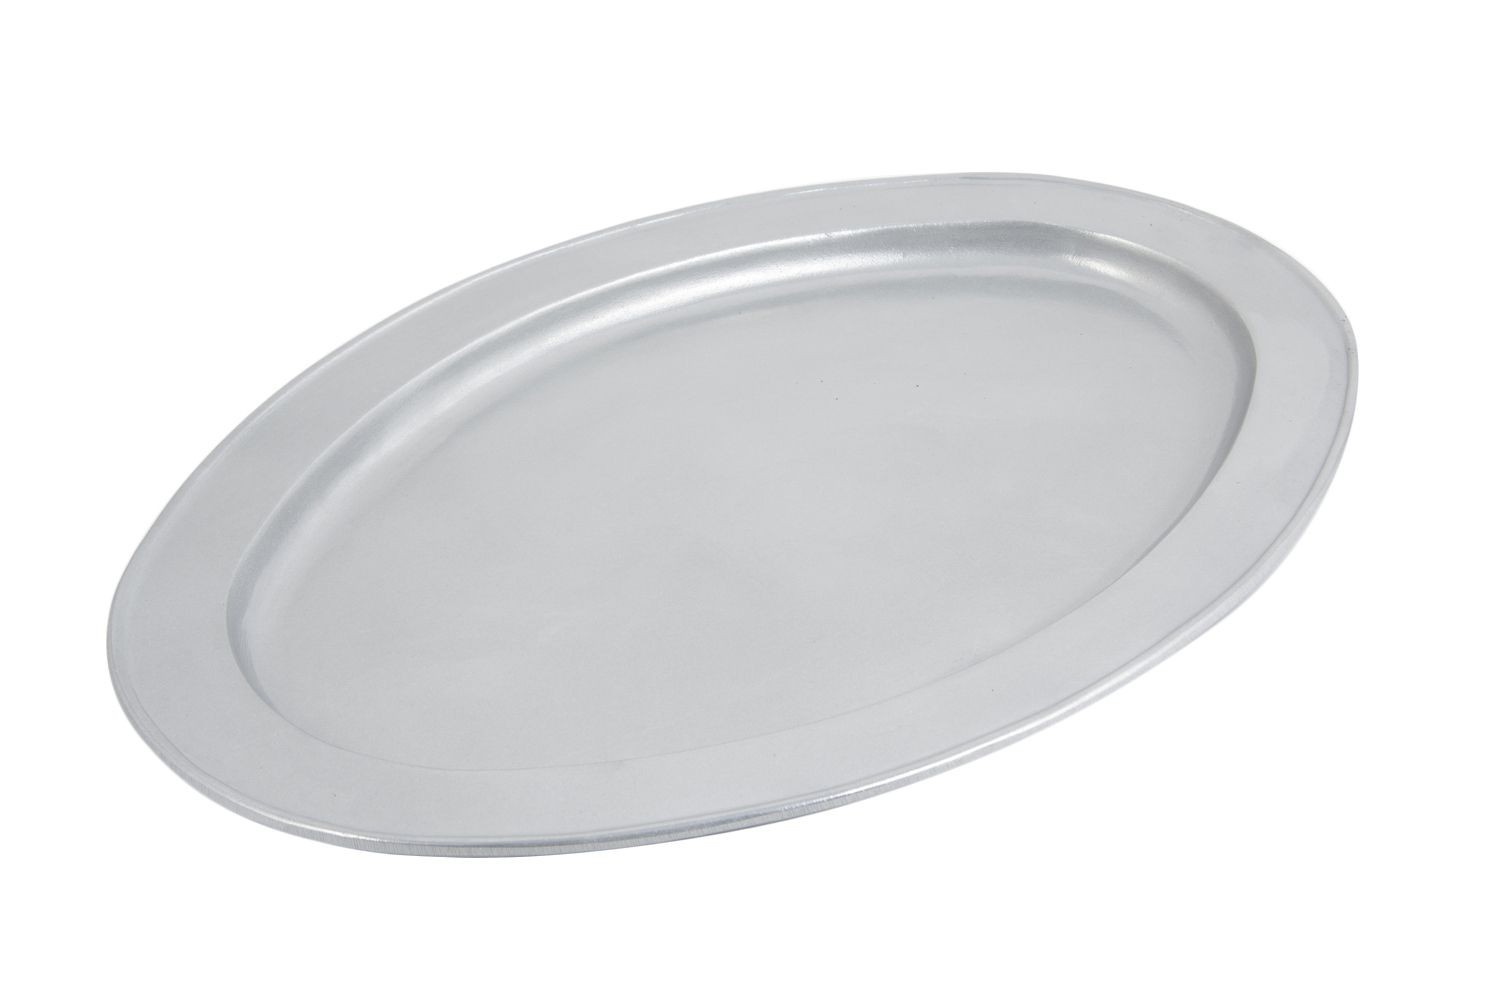 "Bon Chef 2046P Oval Platter, Pewter Glo 15 1/2"" x 22 1/2"""